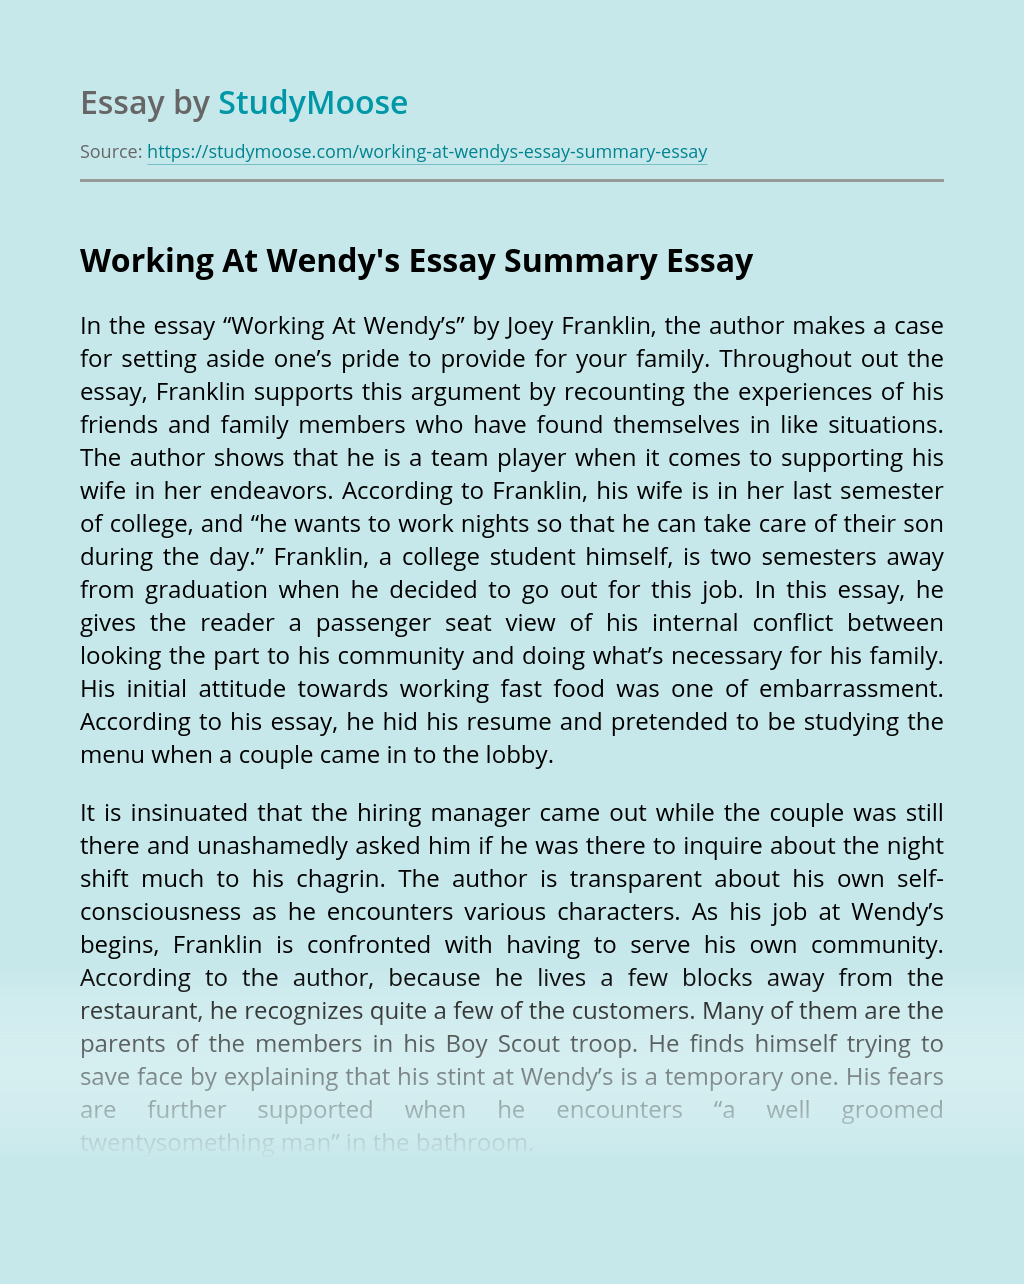 Working At Wendy's Essay Summary